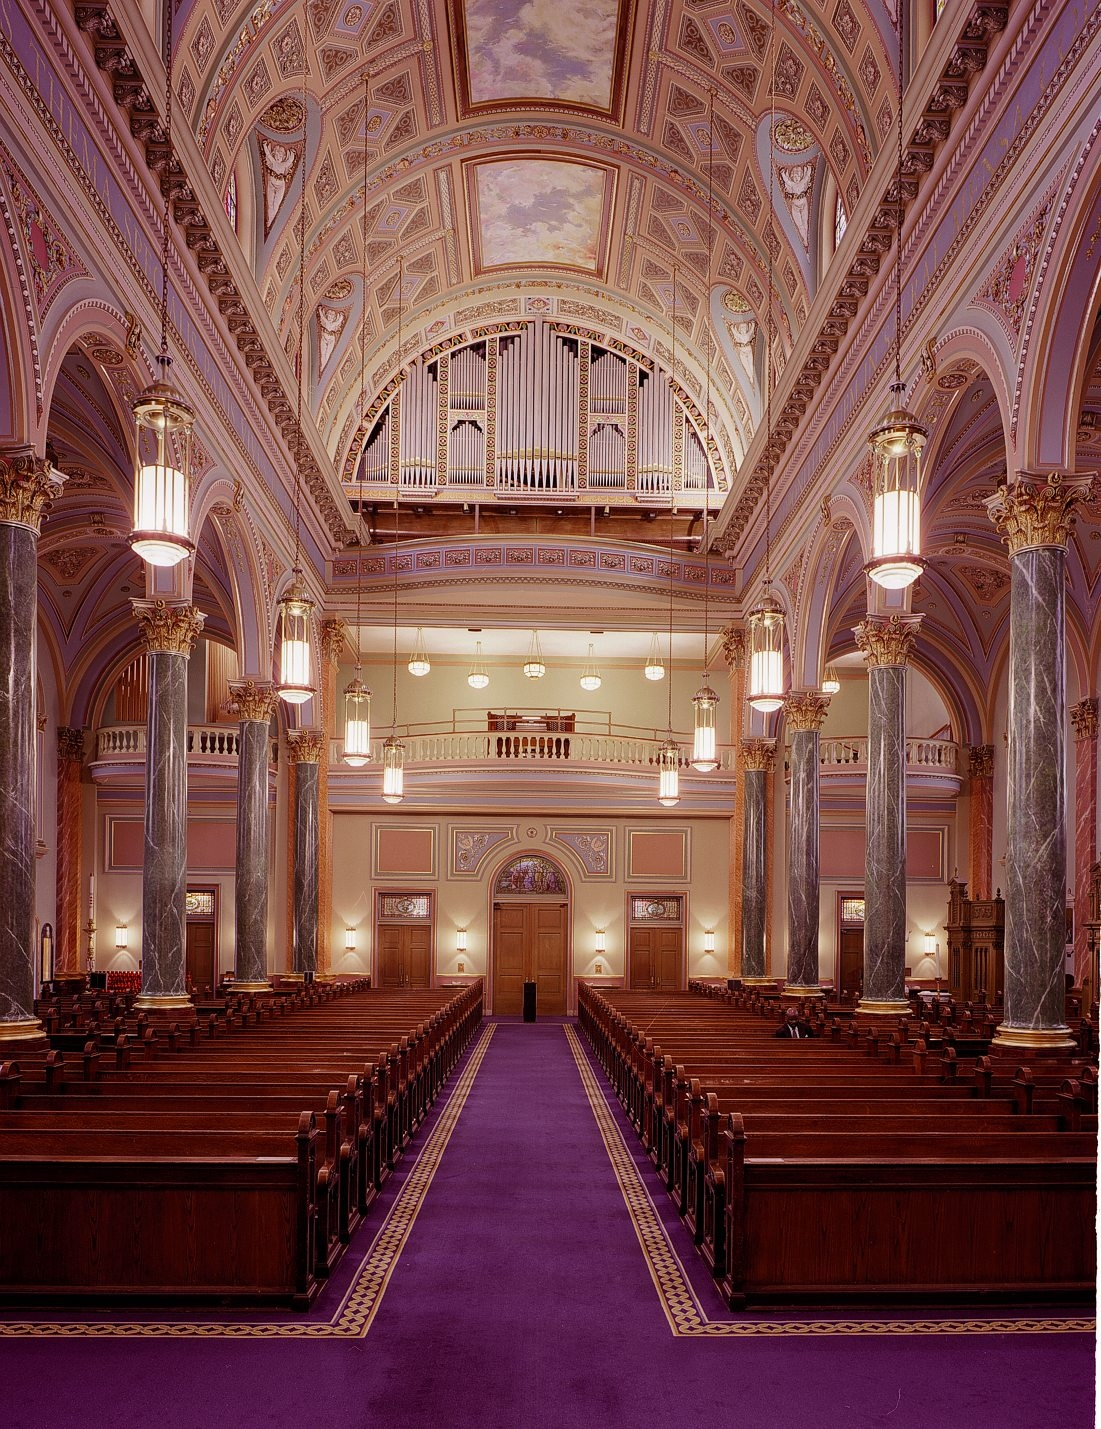 Church of St. Jean Baptiste - New York City (Photo Courtesy of Wicks Organ Company. http://www.wicksorgan.com)